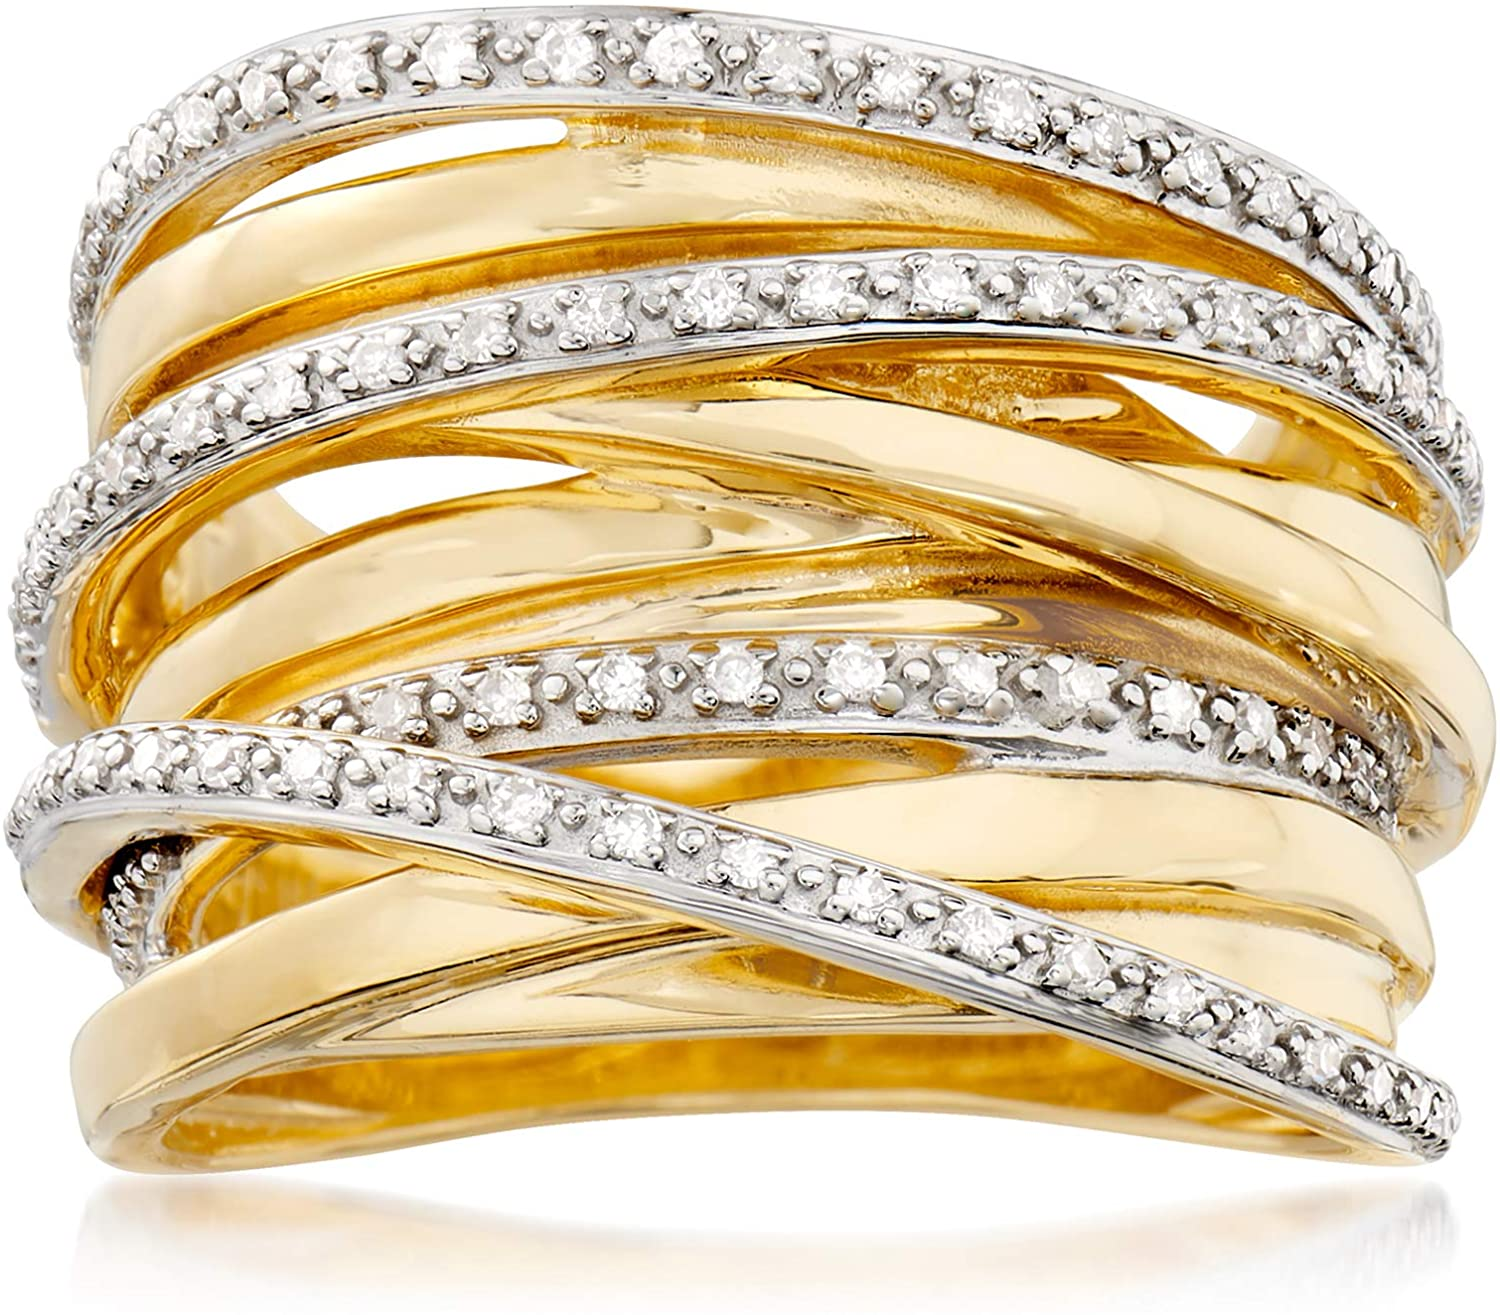 Ross-Simons 0.25 ct. t.w. Diamond Highway Ring in 18kt Gold Over Sterling Silver For Women